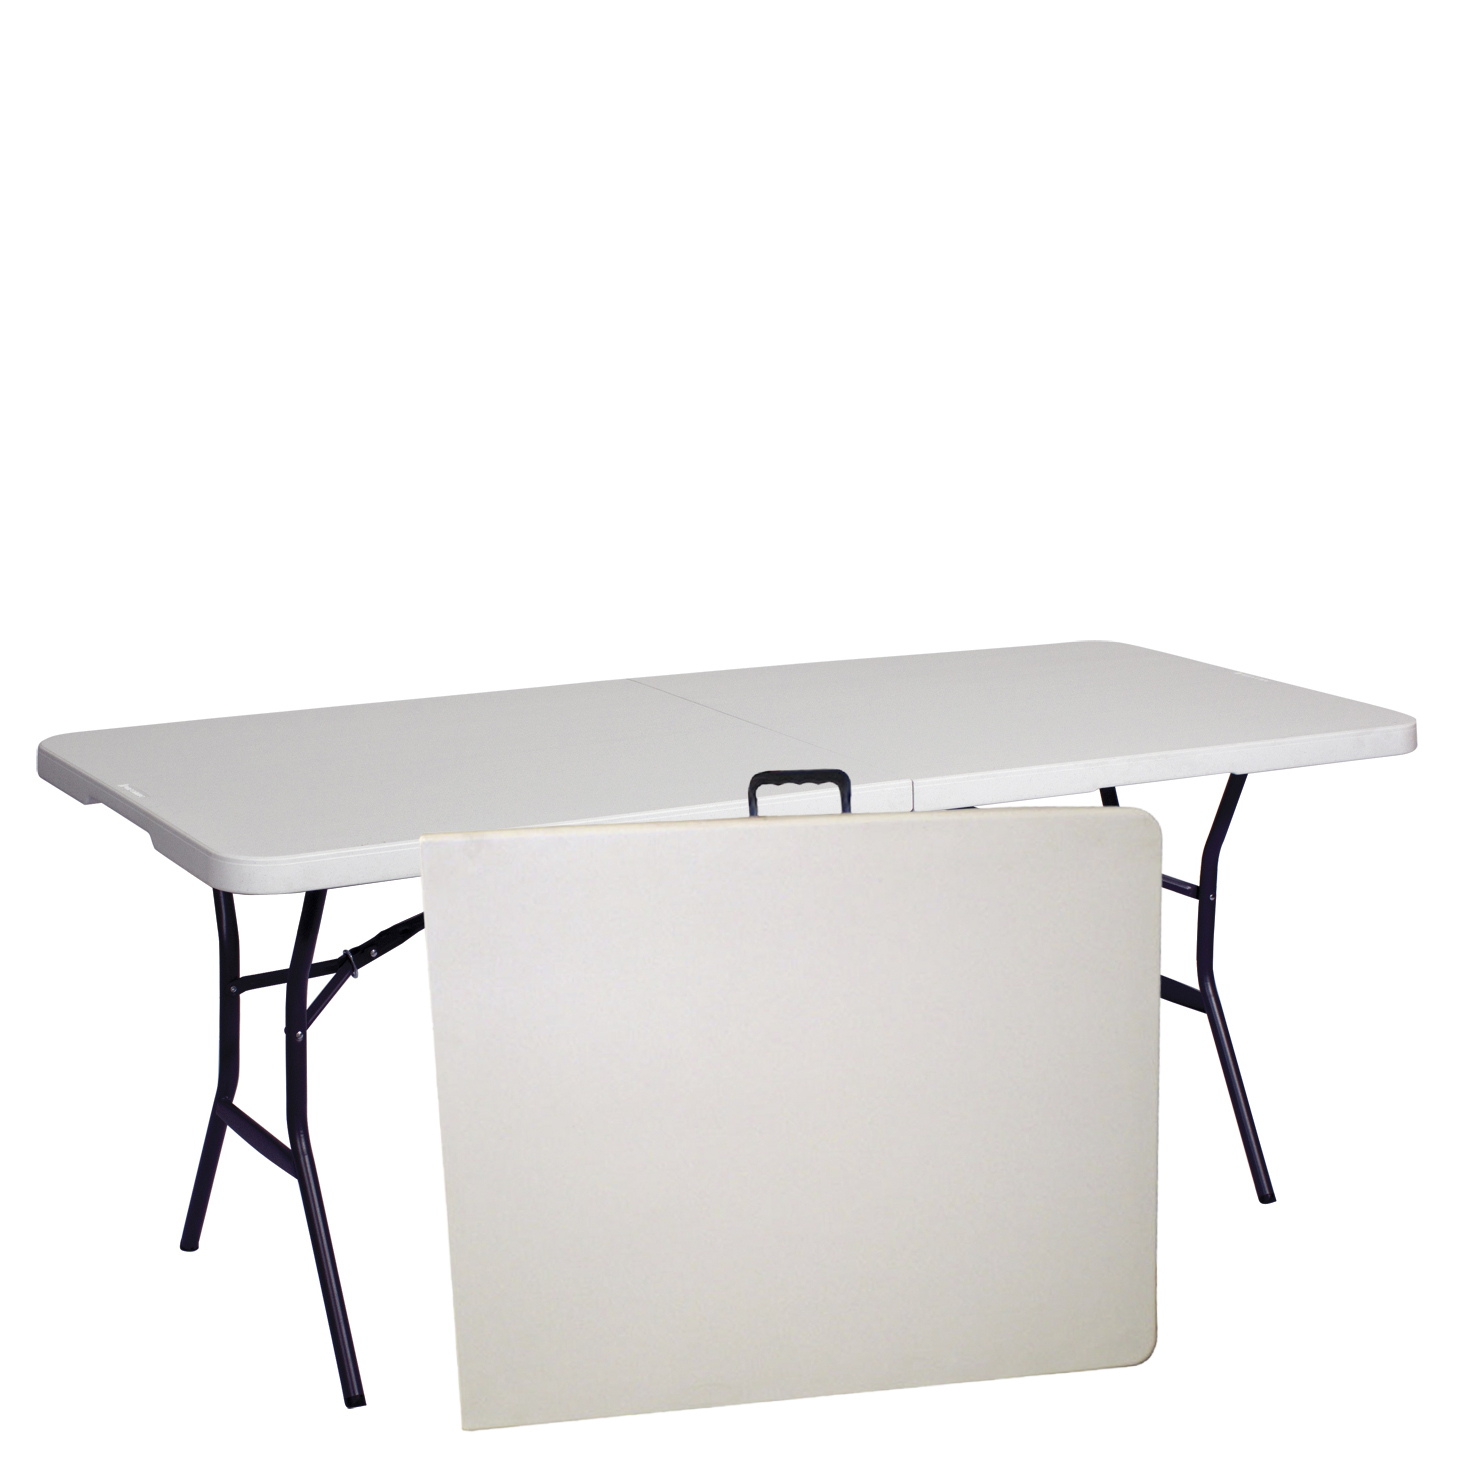 6ft portable folding table for Table 6 table